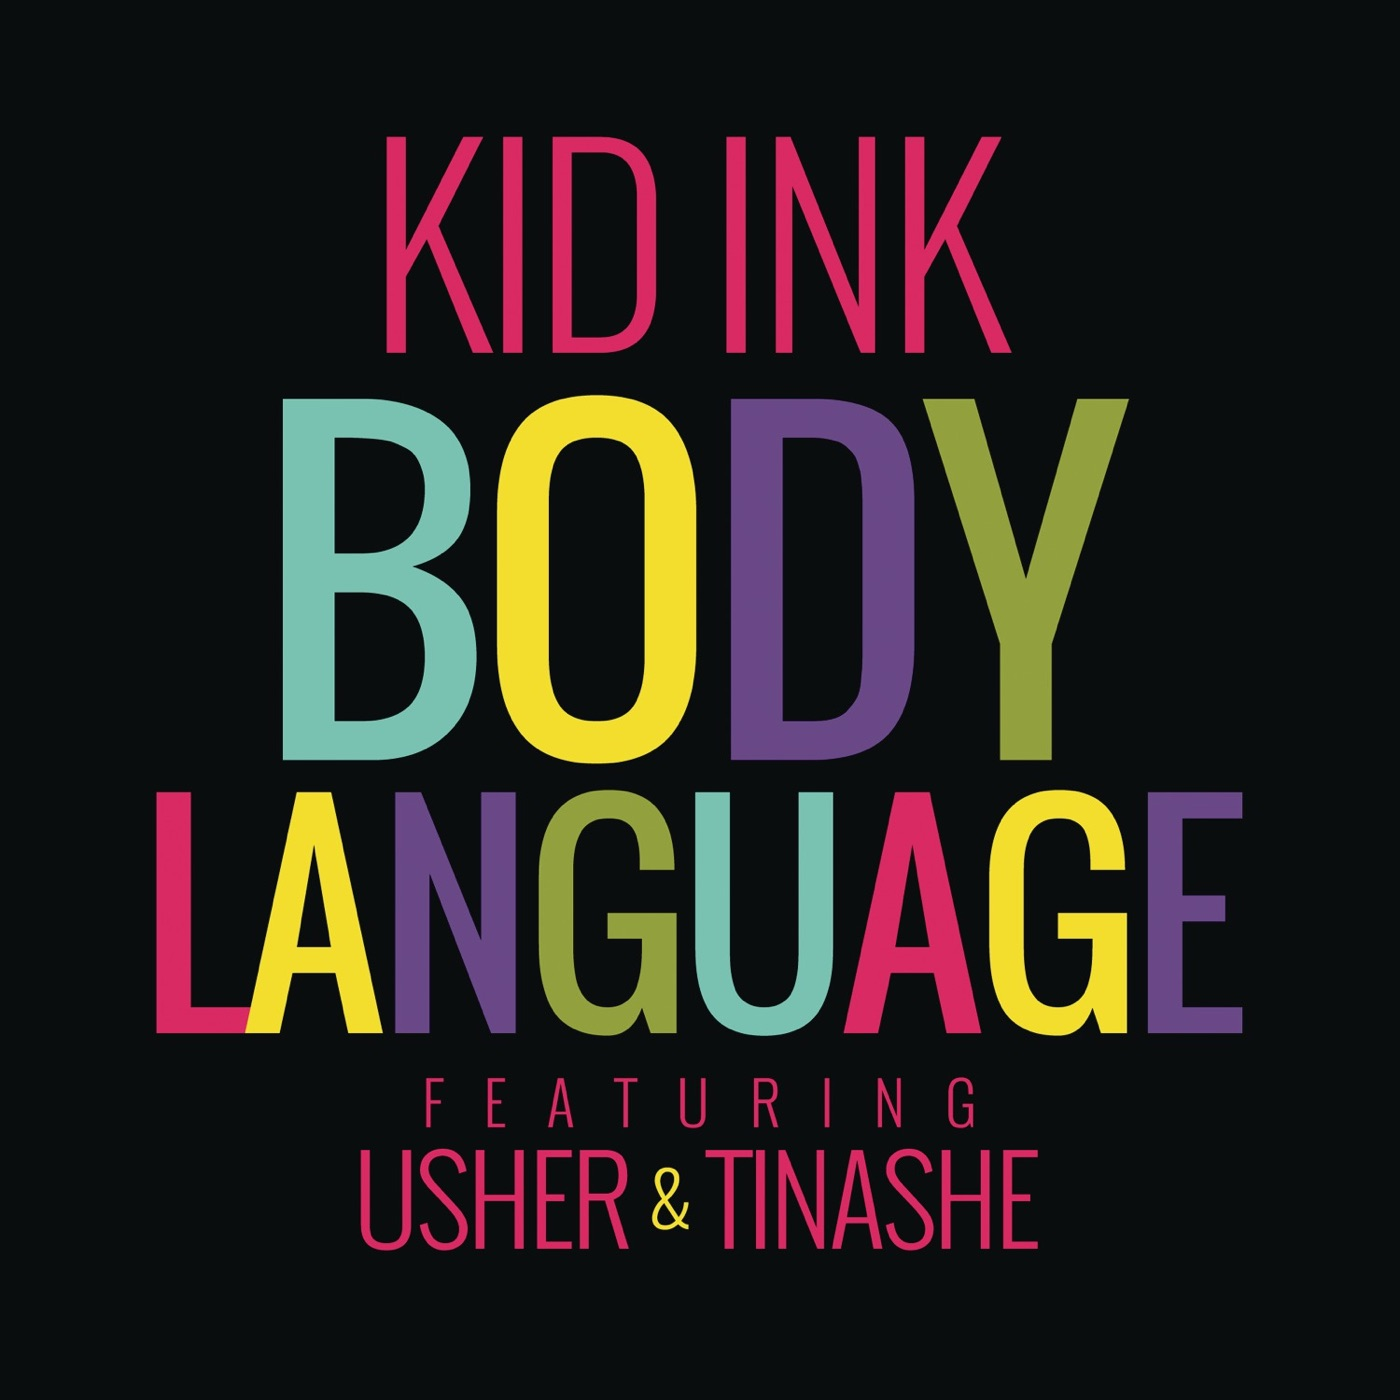 Kid Ink - Body Language (feat. Usher & Tinashe) - Single